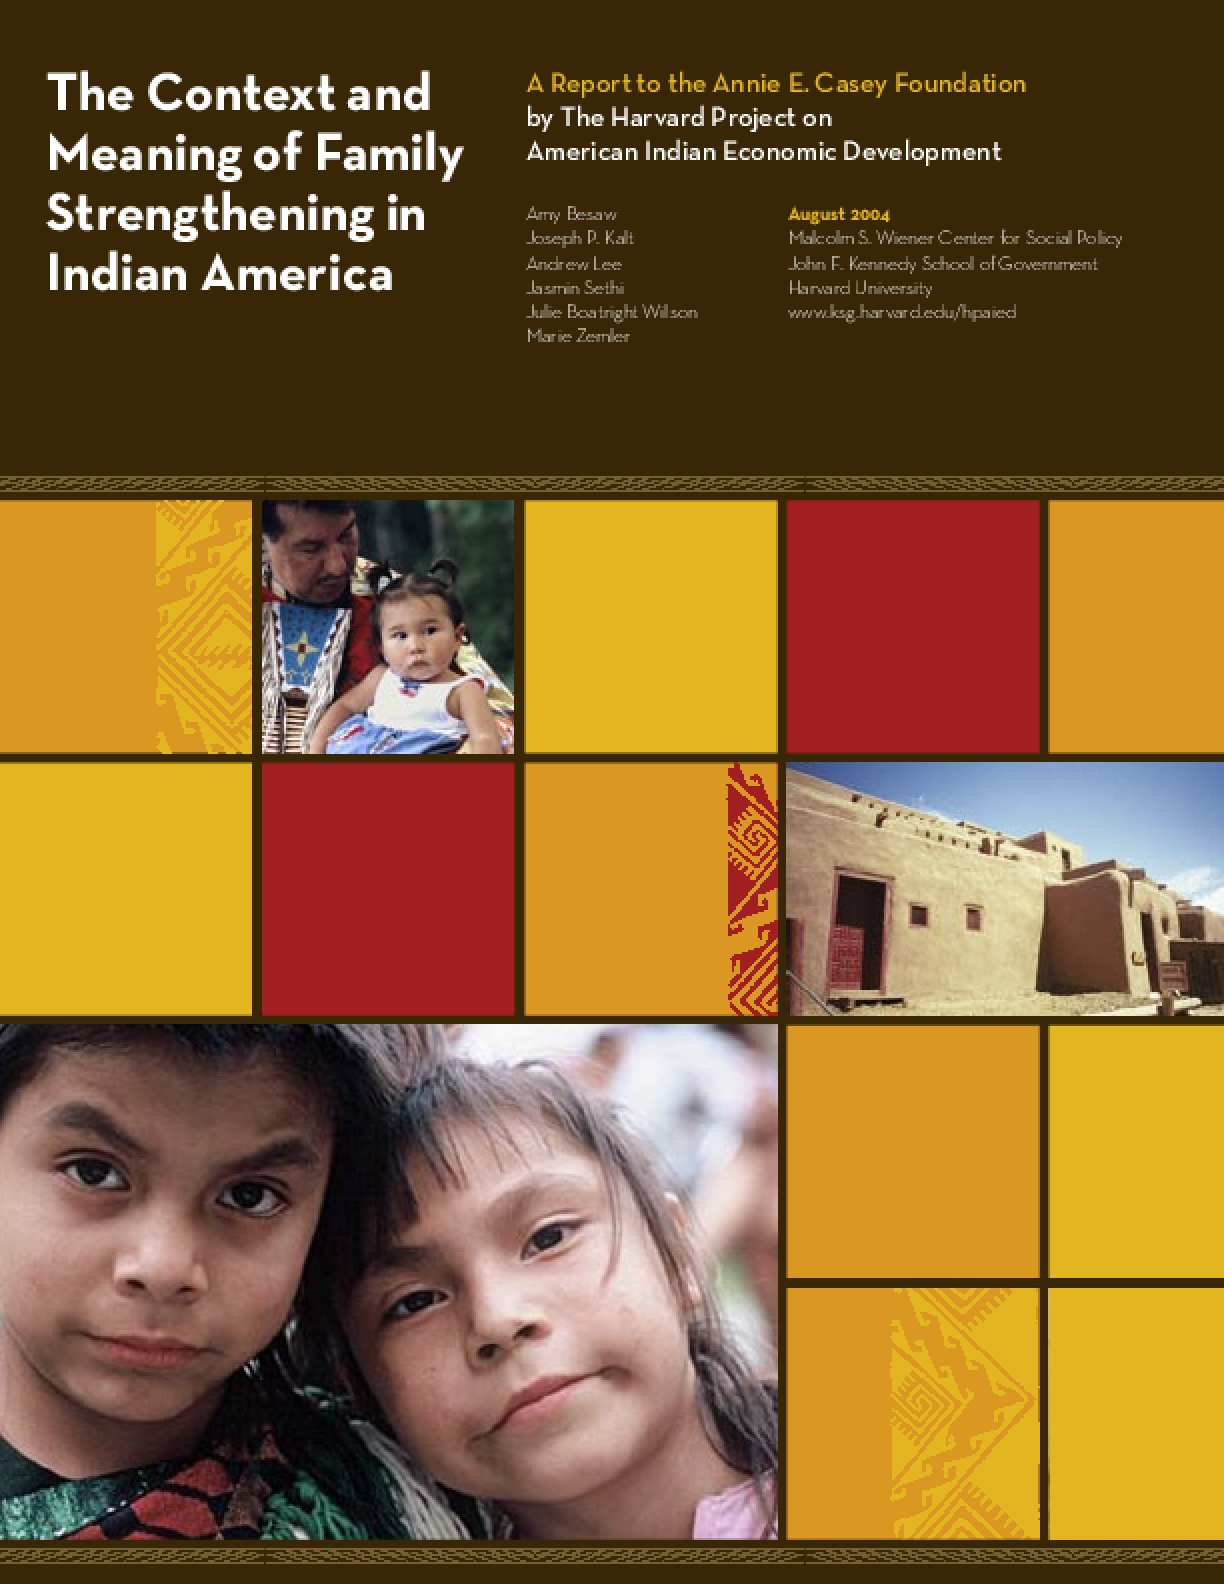 The Context and Meaning of Family Strengthening in Indian America